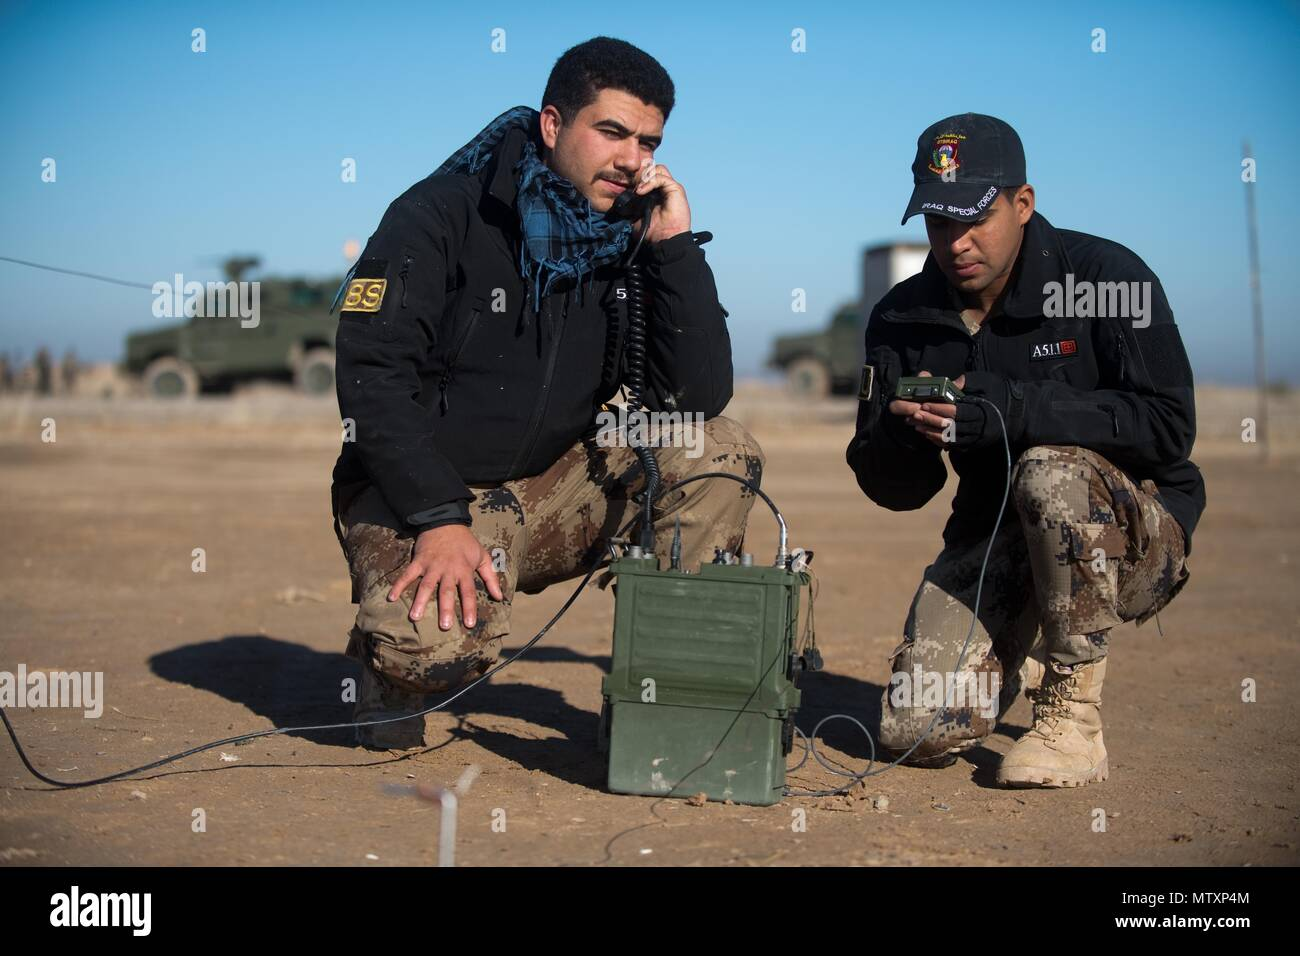 Iraqi Counter-Terrorism Service trainees conduct high frequency communications training near Baghdad, Iraq, Jan. 30, 2017. ICTS is Iraq's elite counter-terrorism force and has proven to be an effective fighting force against ISIL. This training is part of the overall Combined Joint Task Force – Operation Inherent Resolve building partner capacity mission to increase the capabilities of partnered forces fighting ISIL. CJTF-OIR is the global Coalition to defeat ISIL in Iraq and Syria. (U.S. Army photo by Staff Sgt. Alex Manne) - Stock Image